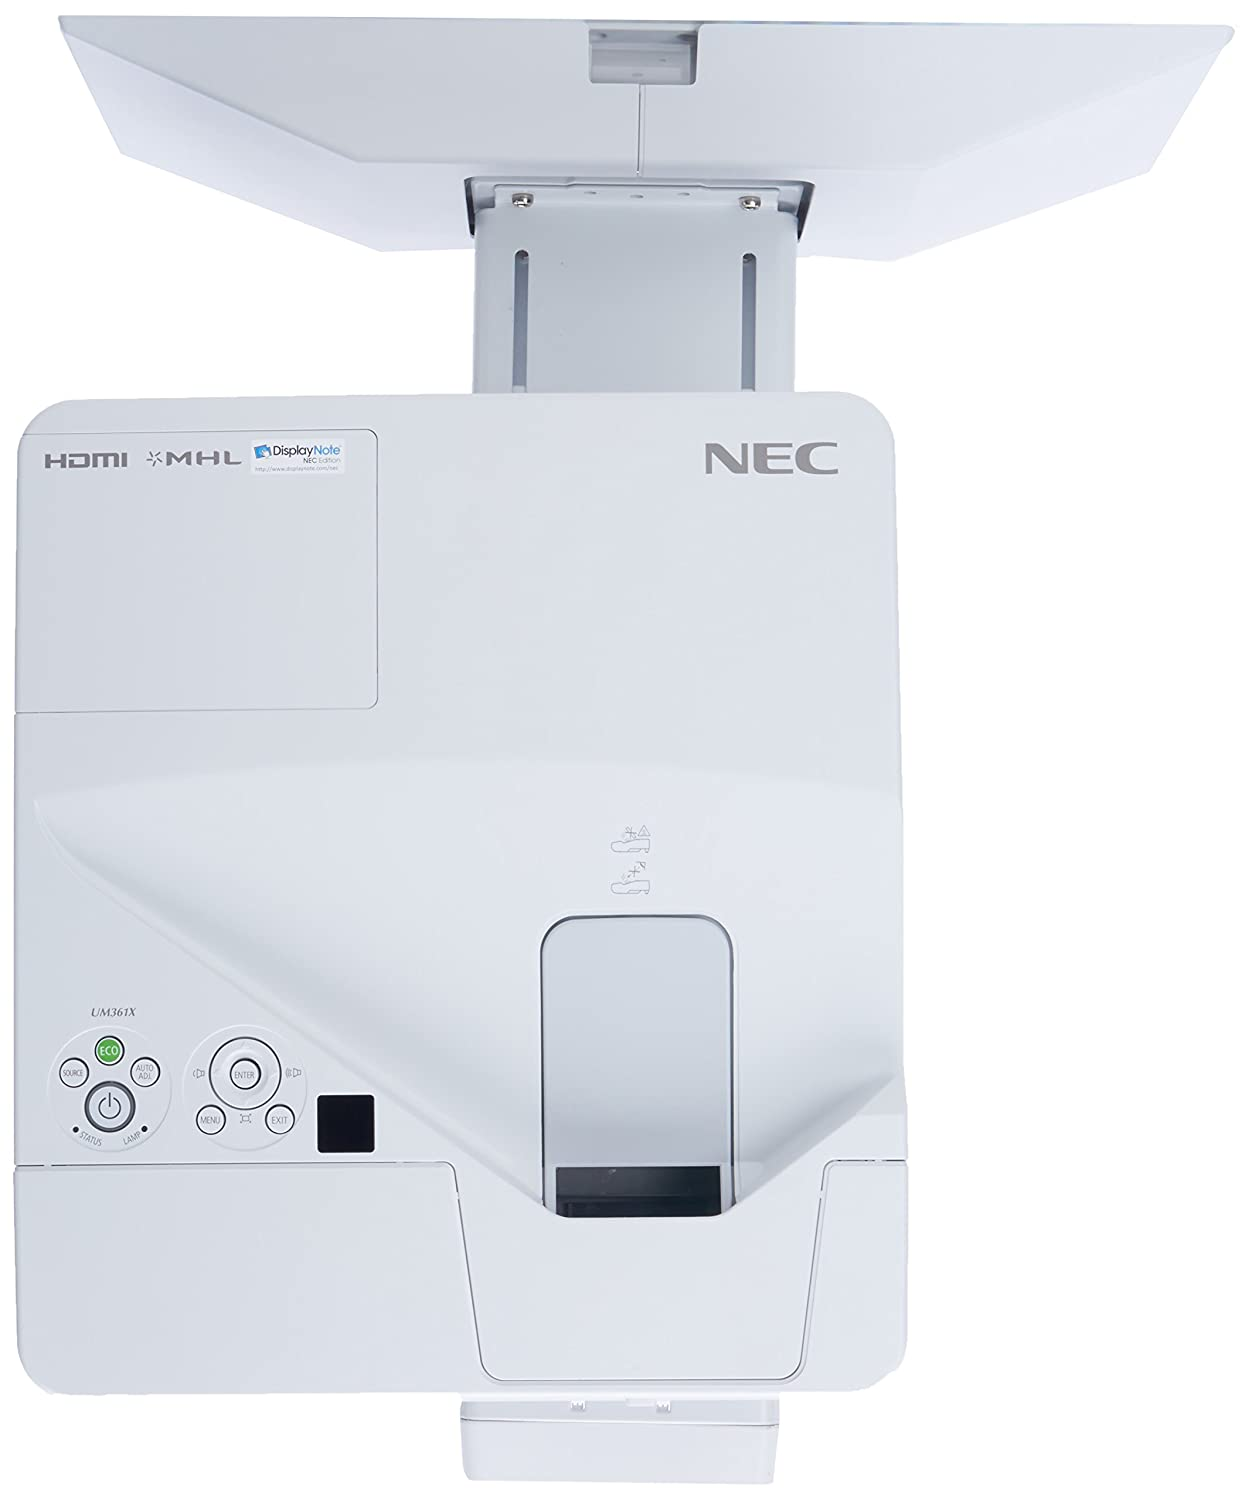 NEC UM361X-WK - LCD projector - 3600 lumens - XGA (1024 x 768) - 4:3 - ultra short-throw lens B00QPHV9HK